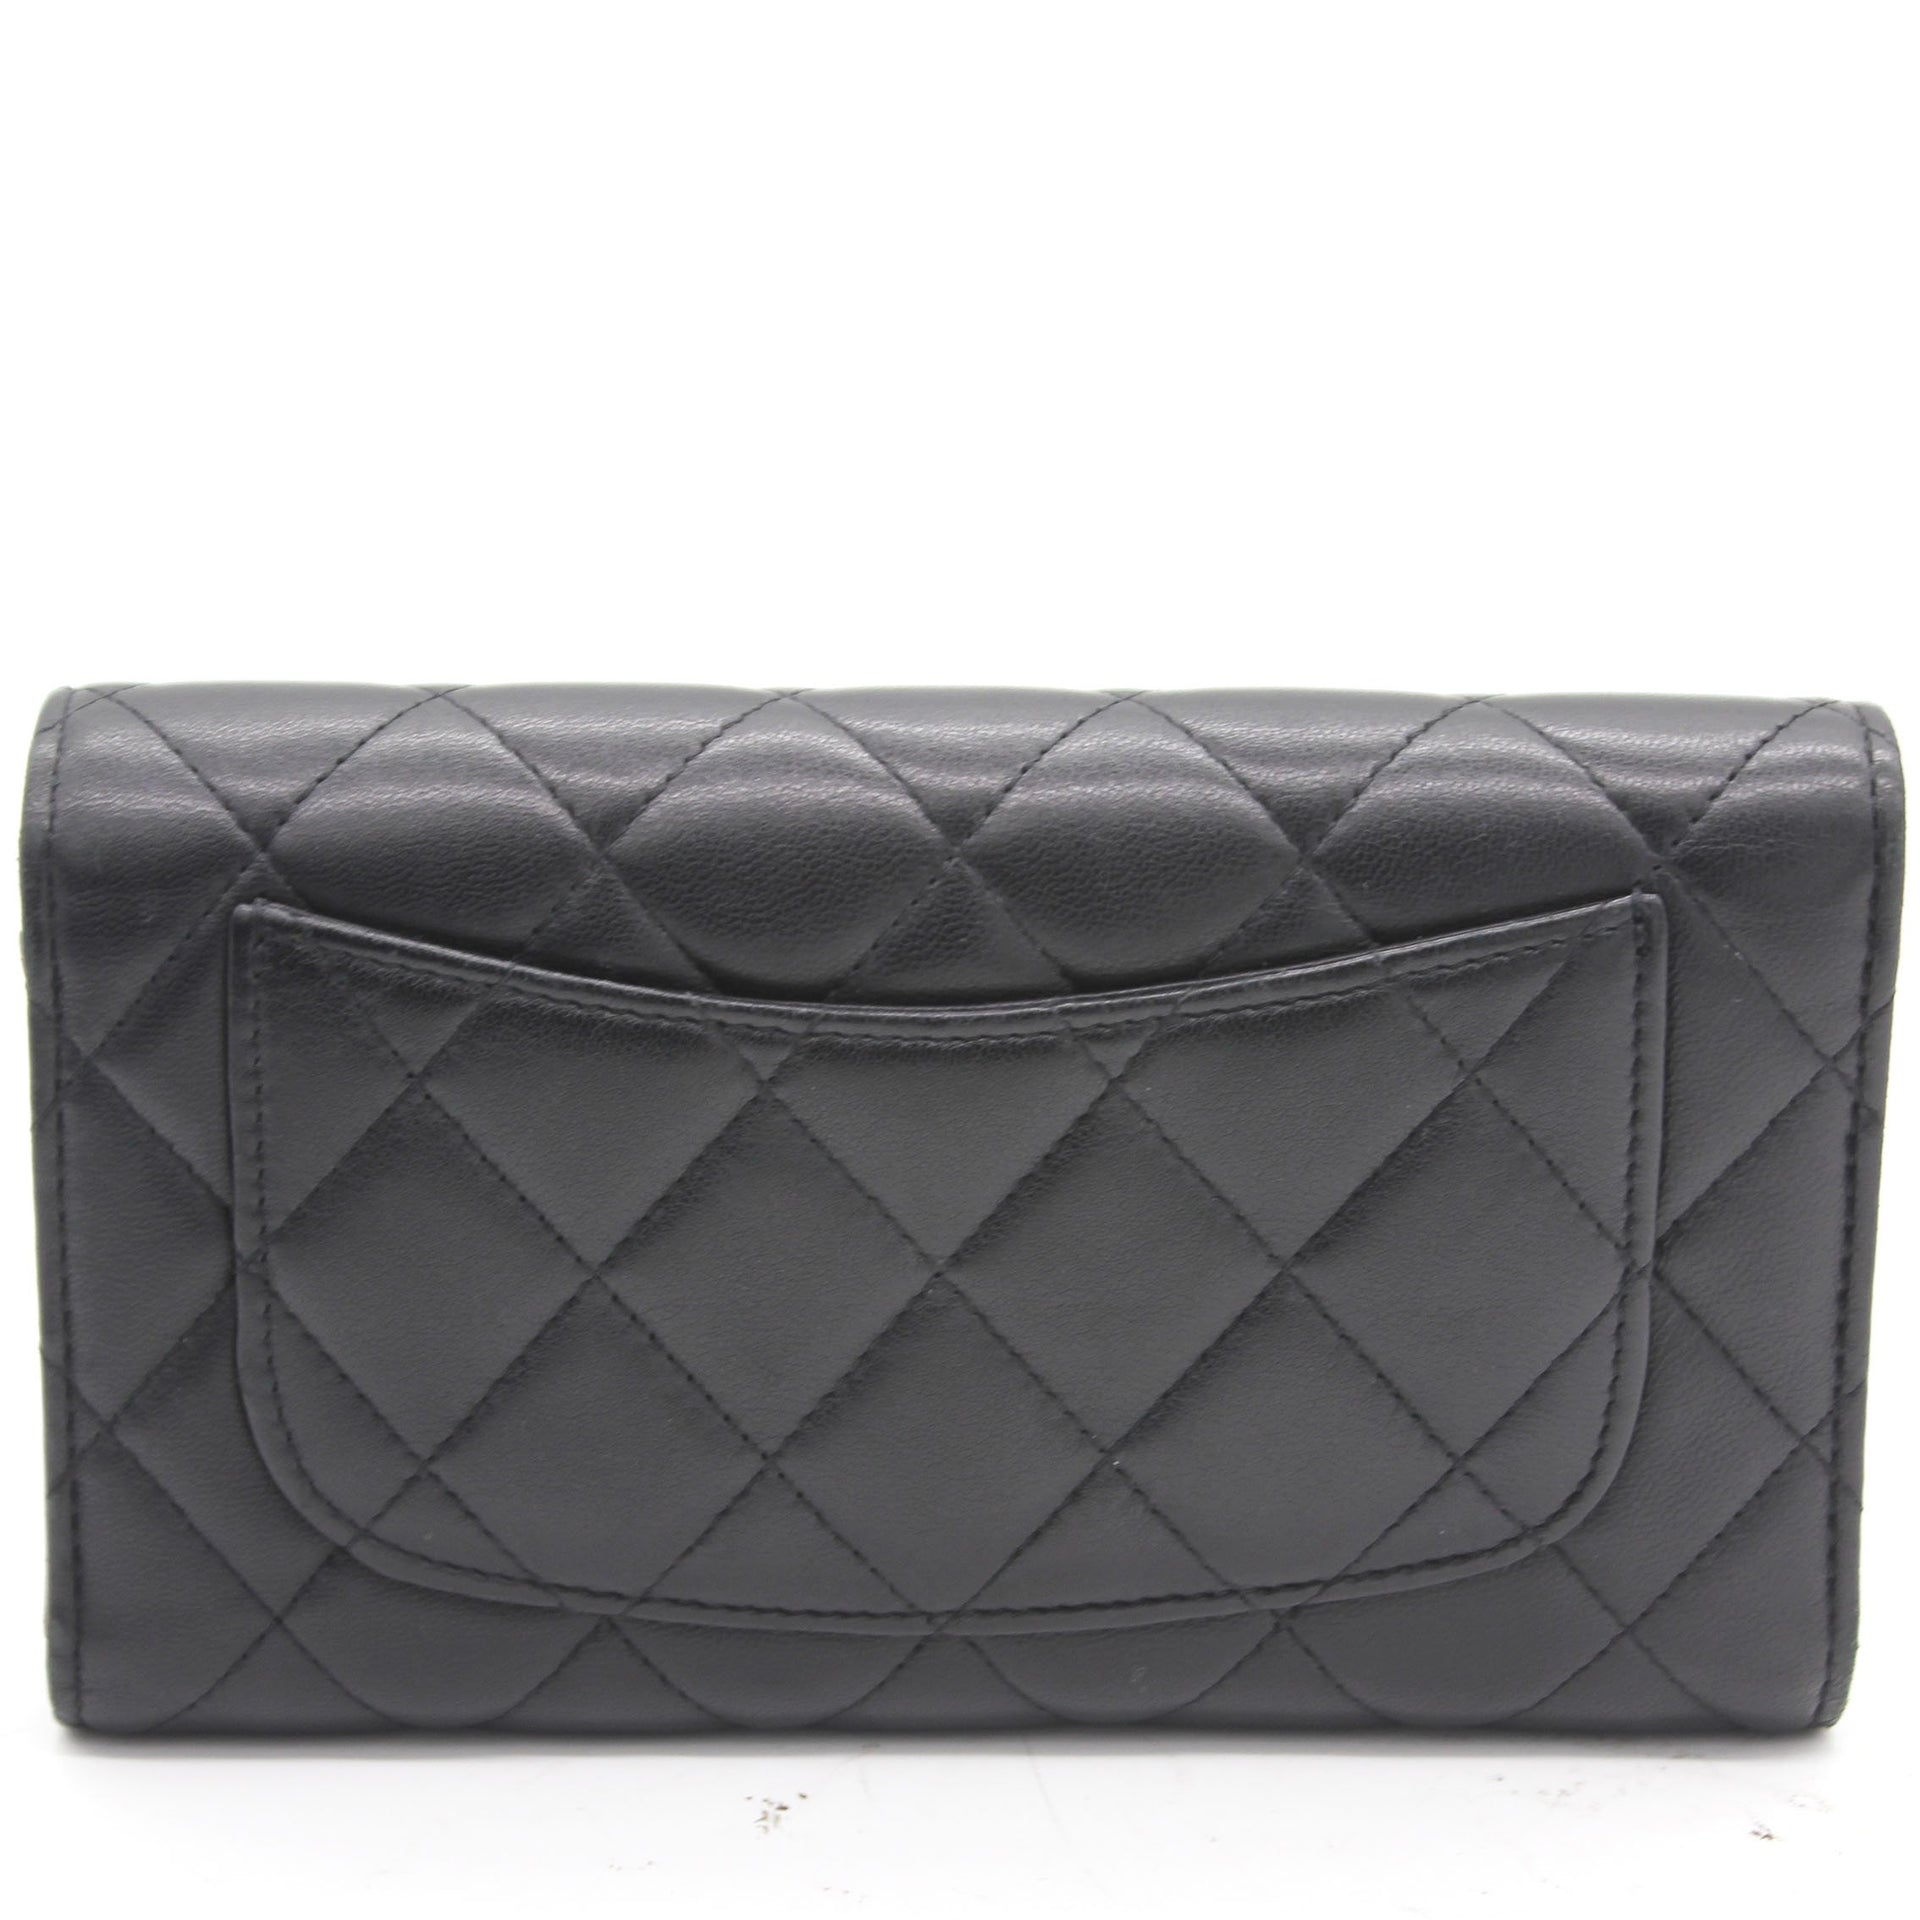 Lambskin Quilted Long Flap Wallet Black